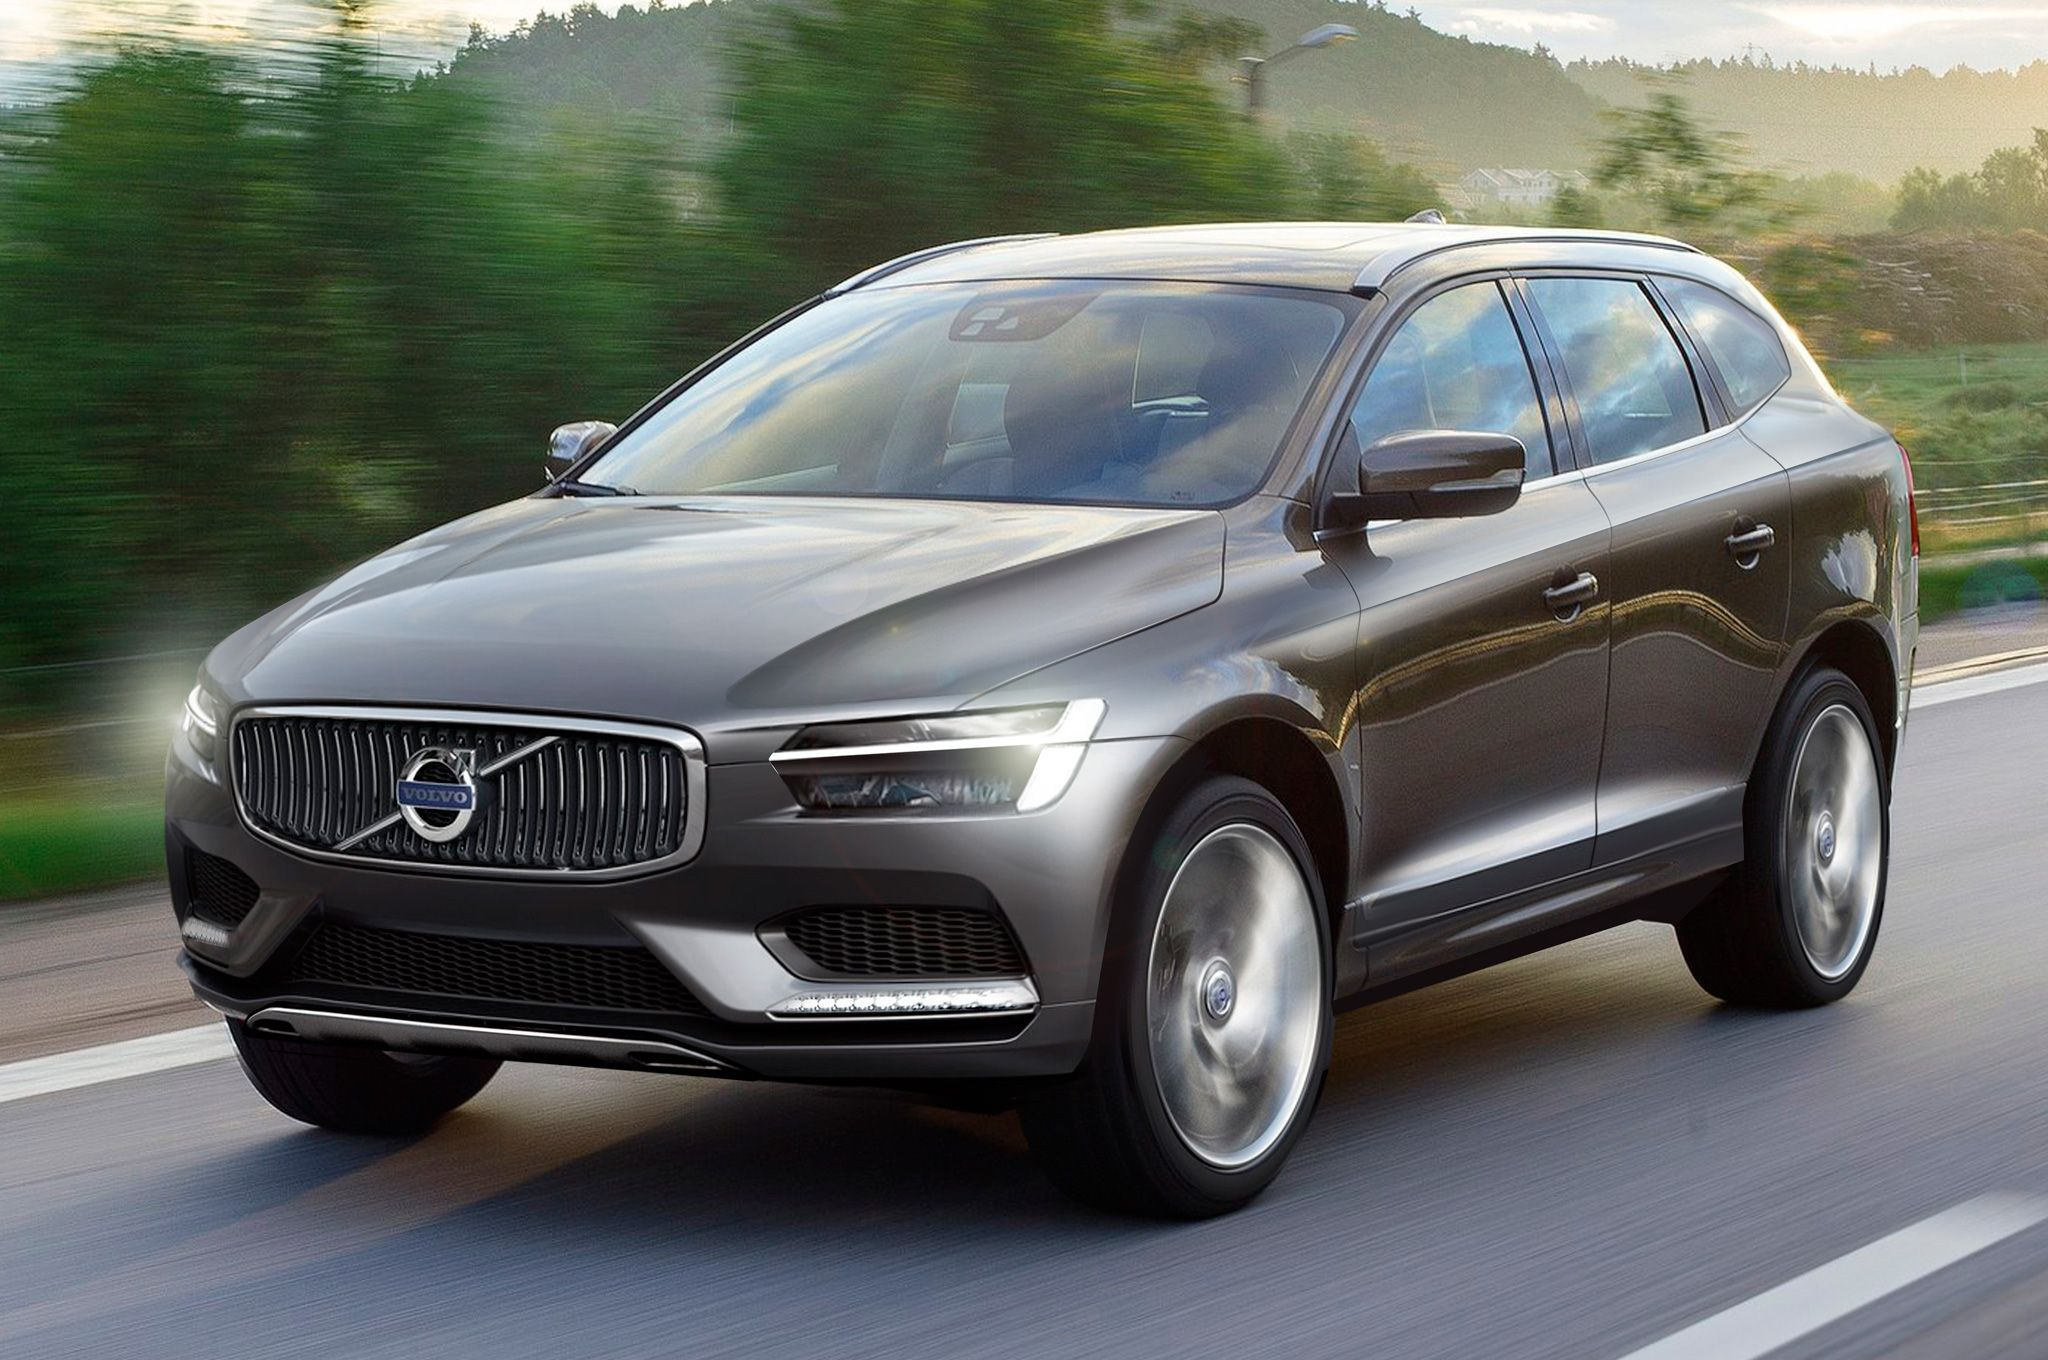 photos launch price date details pics volvo features release video india